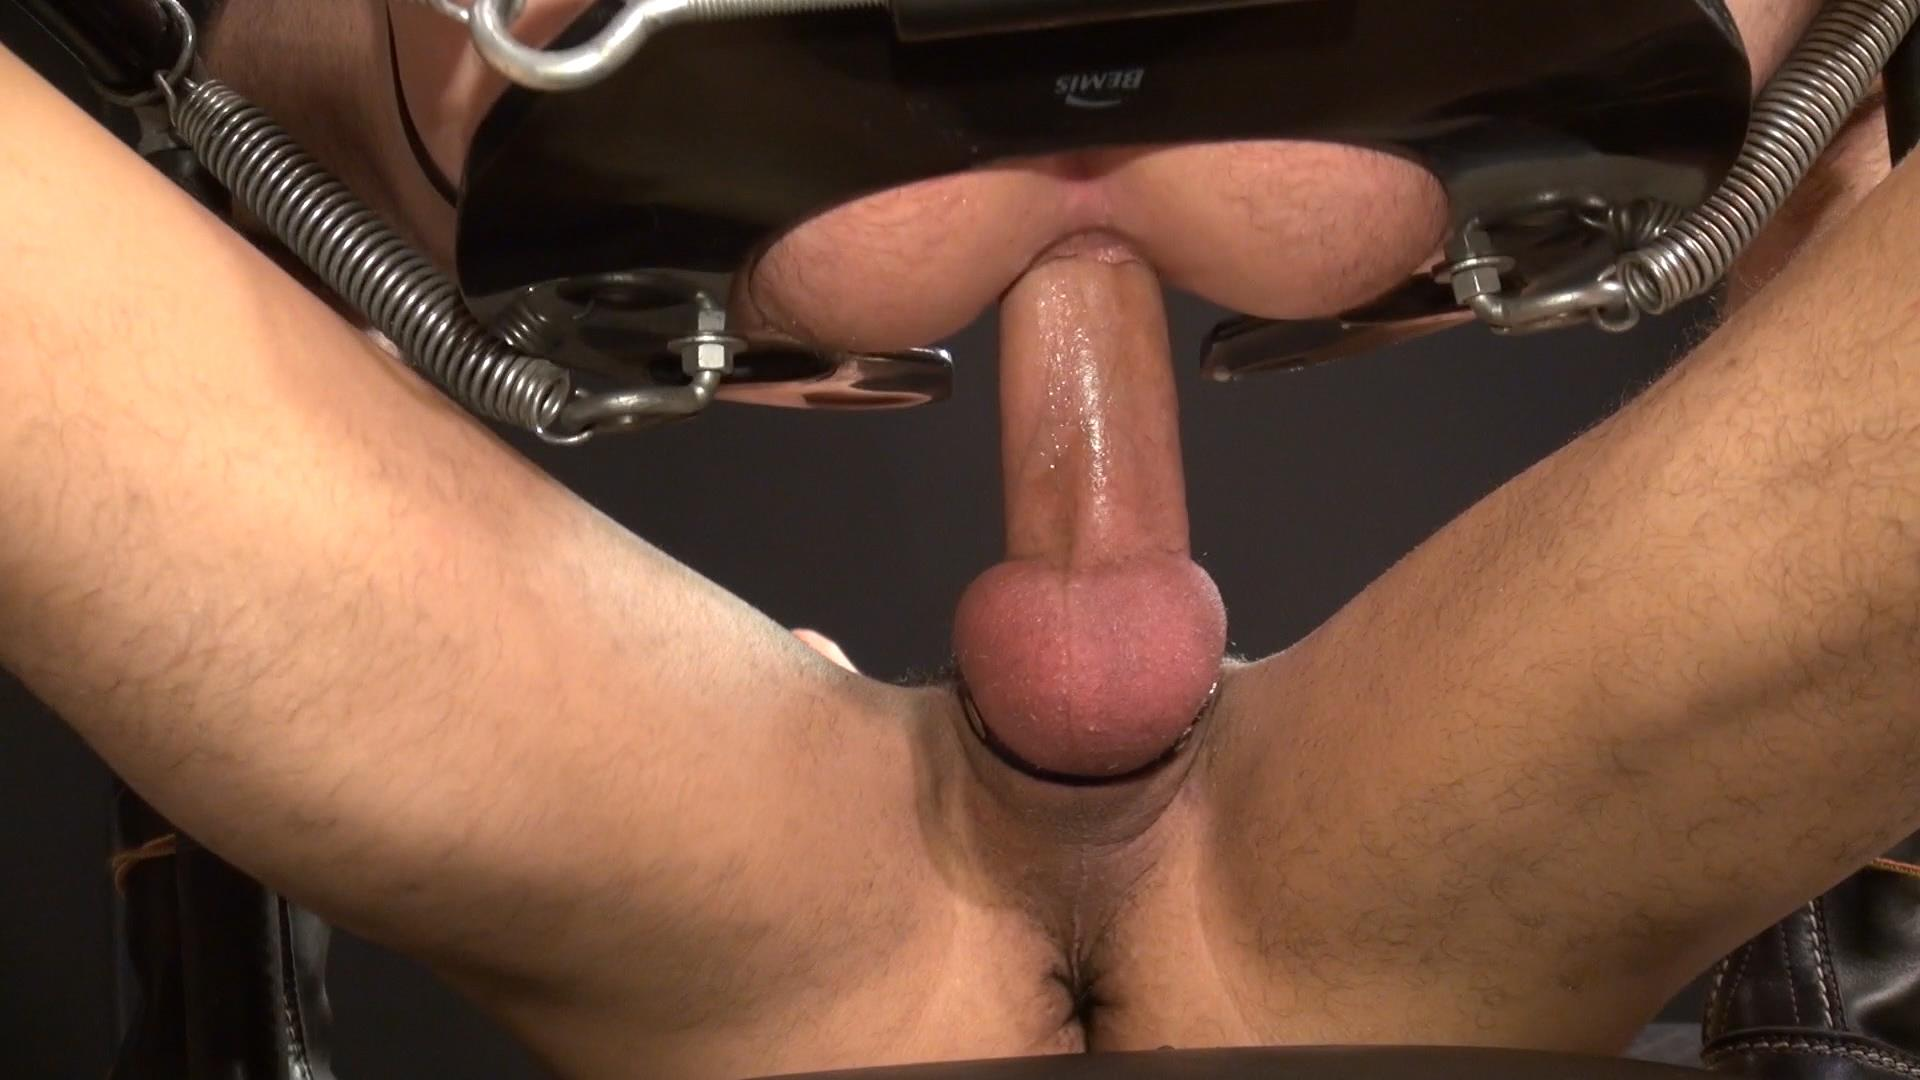 Raw-and-Rough-Dusty-Williams-and-Seth-Patrick-Barebacking-A-Stranger-at-A-Sex-Club-Hairy-Amateur-Gay-Porn-10 Barebacking A Hairy Guy At A Gay Sex Club